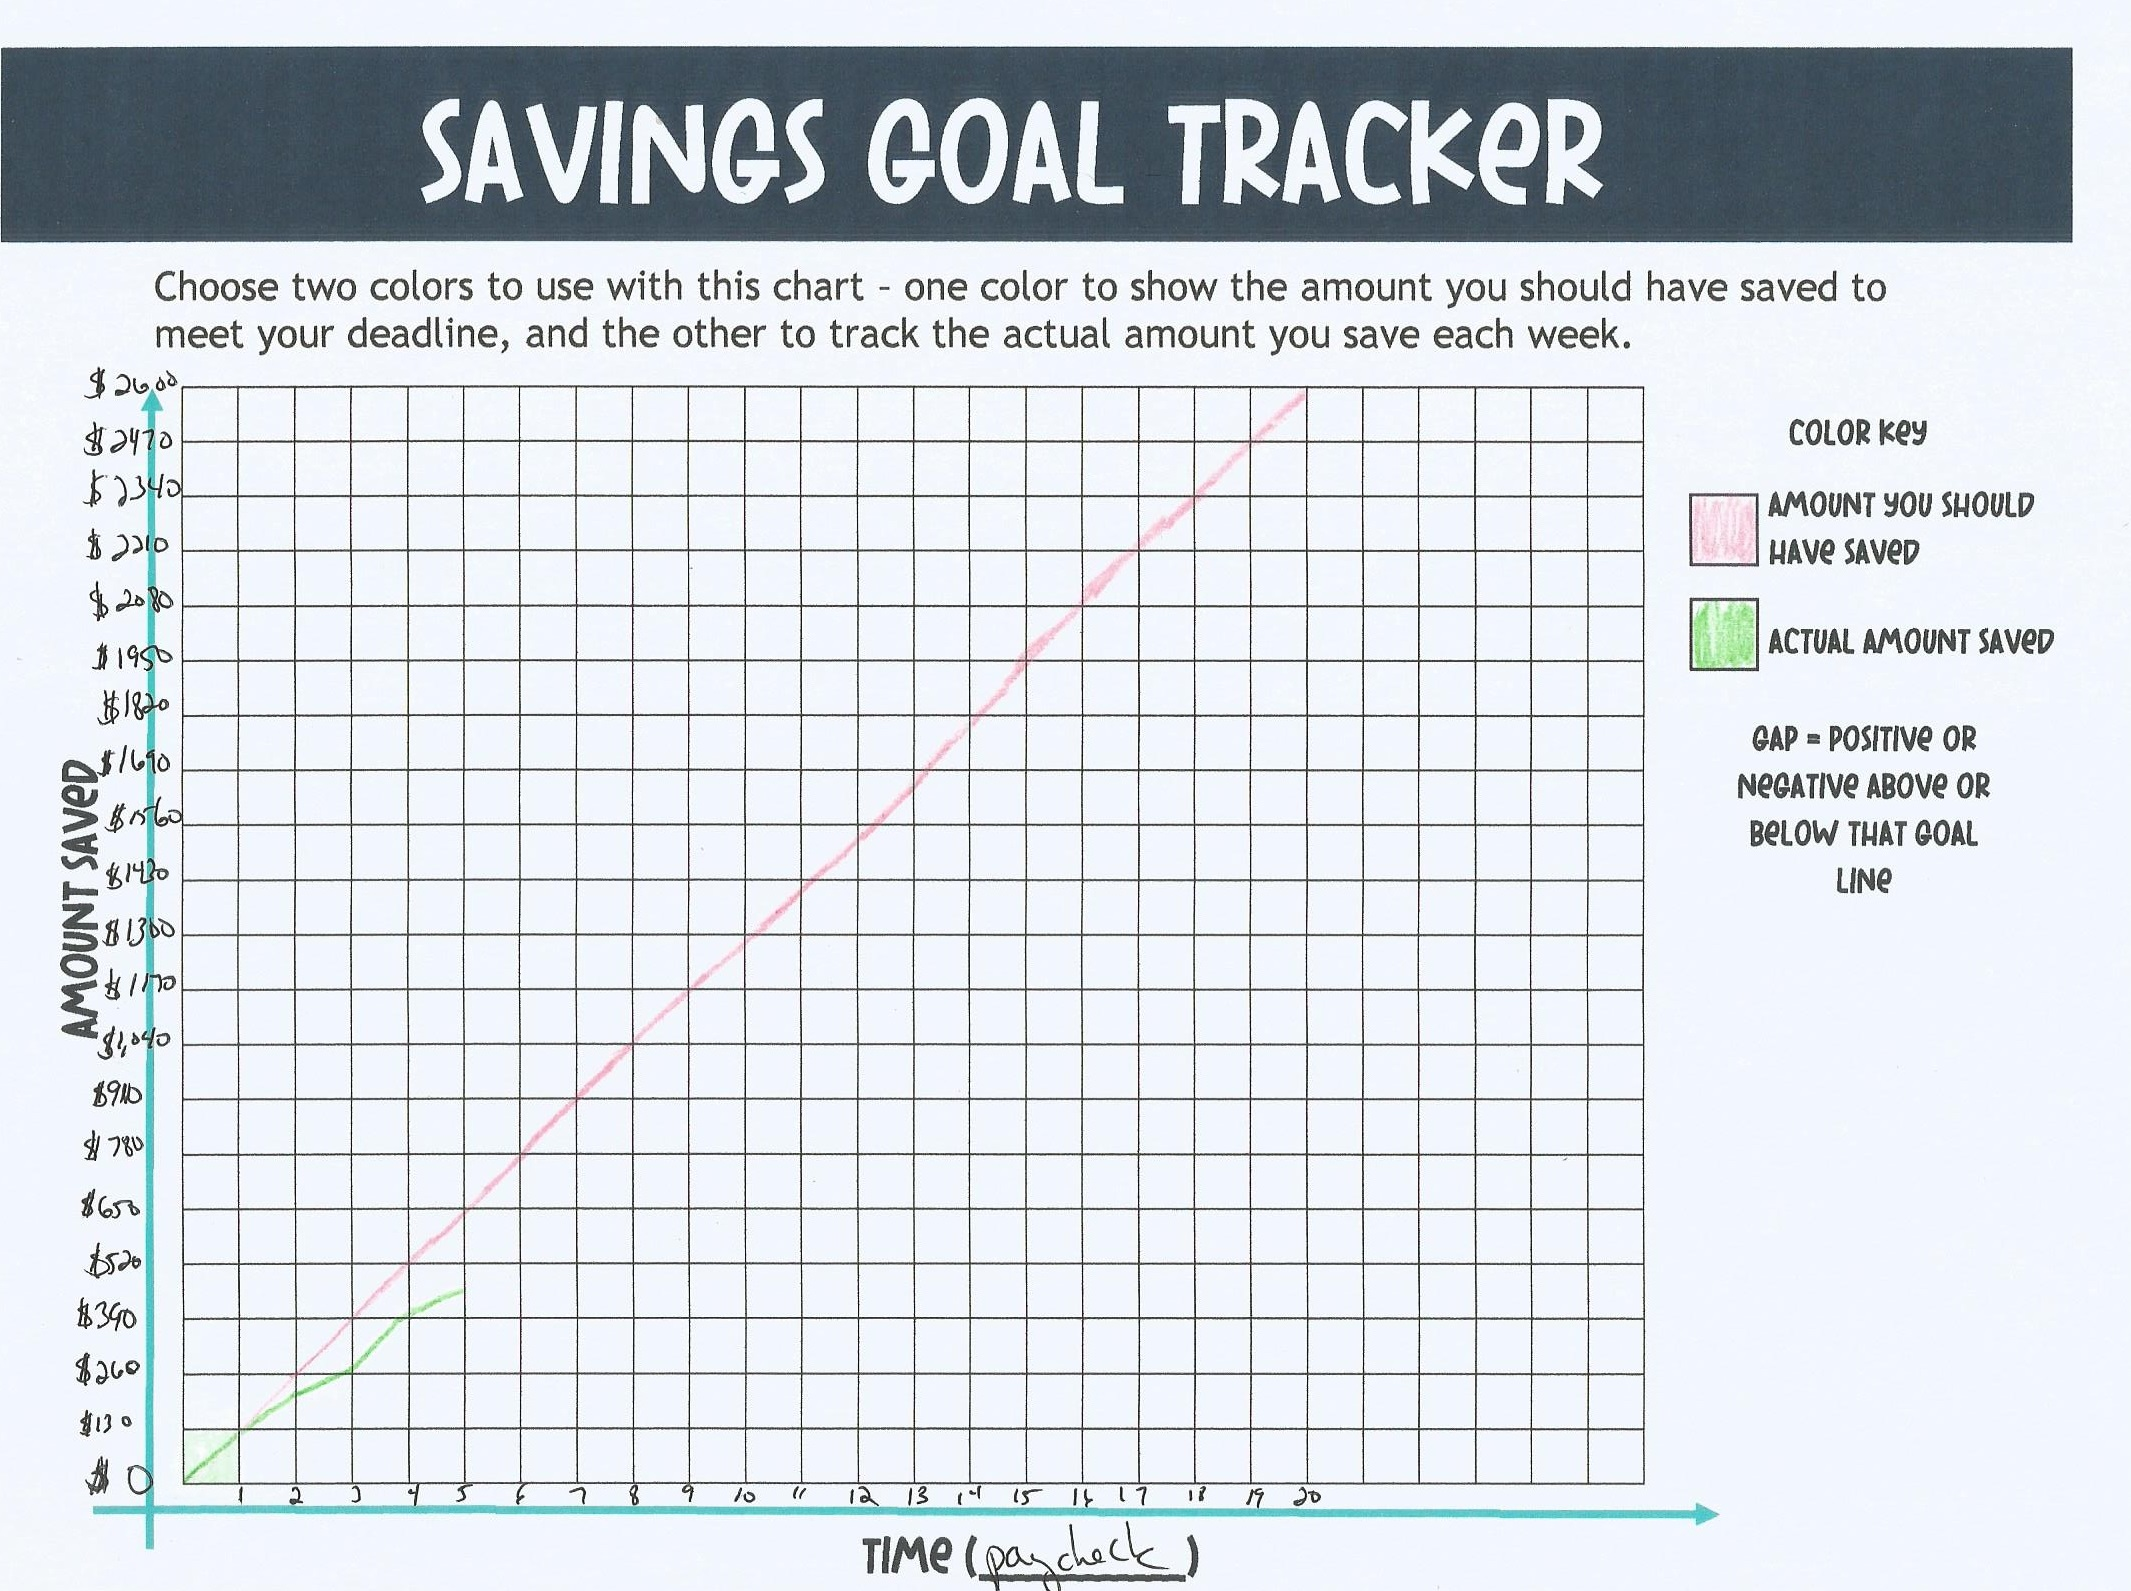 savings goal money tracker graph with the amount saved on the y-axis and time on the x-axis